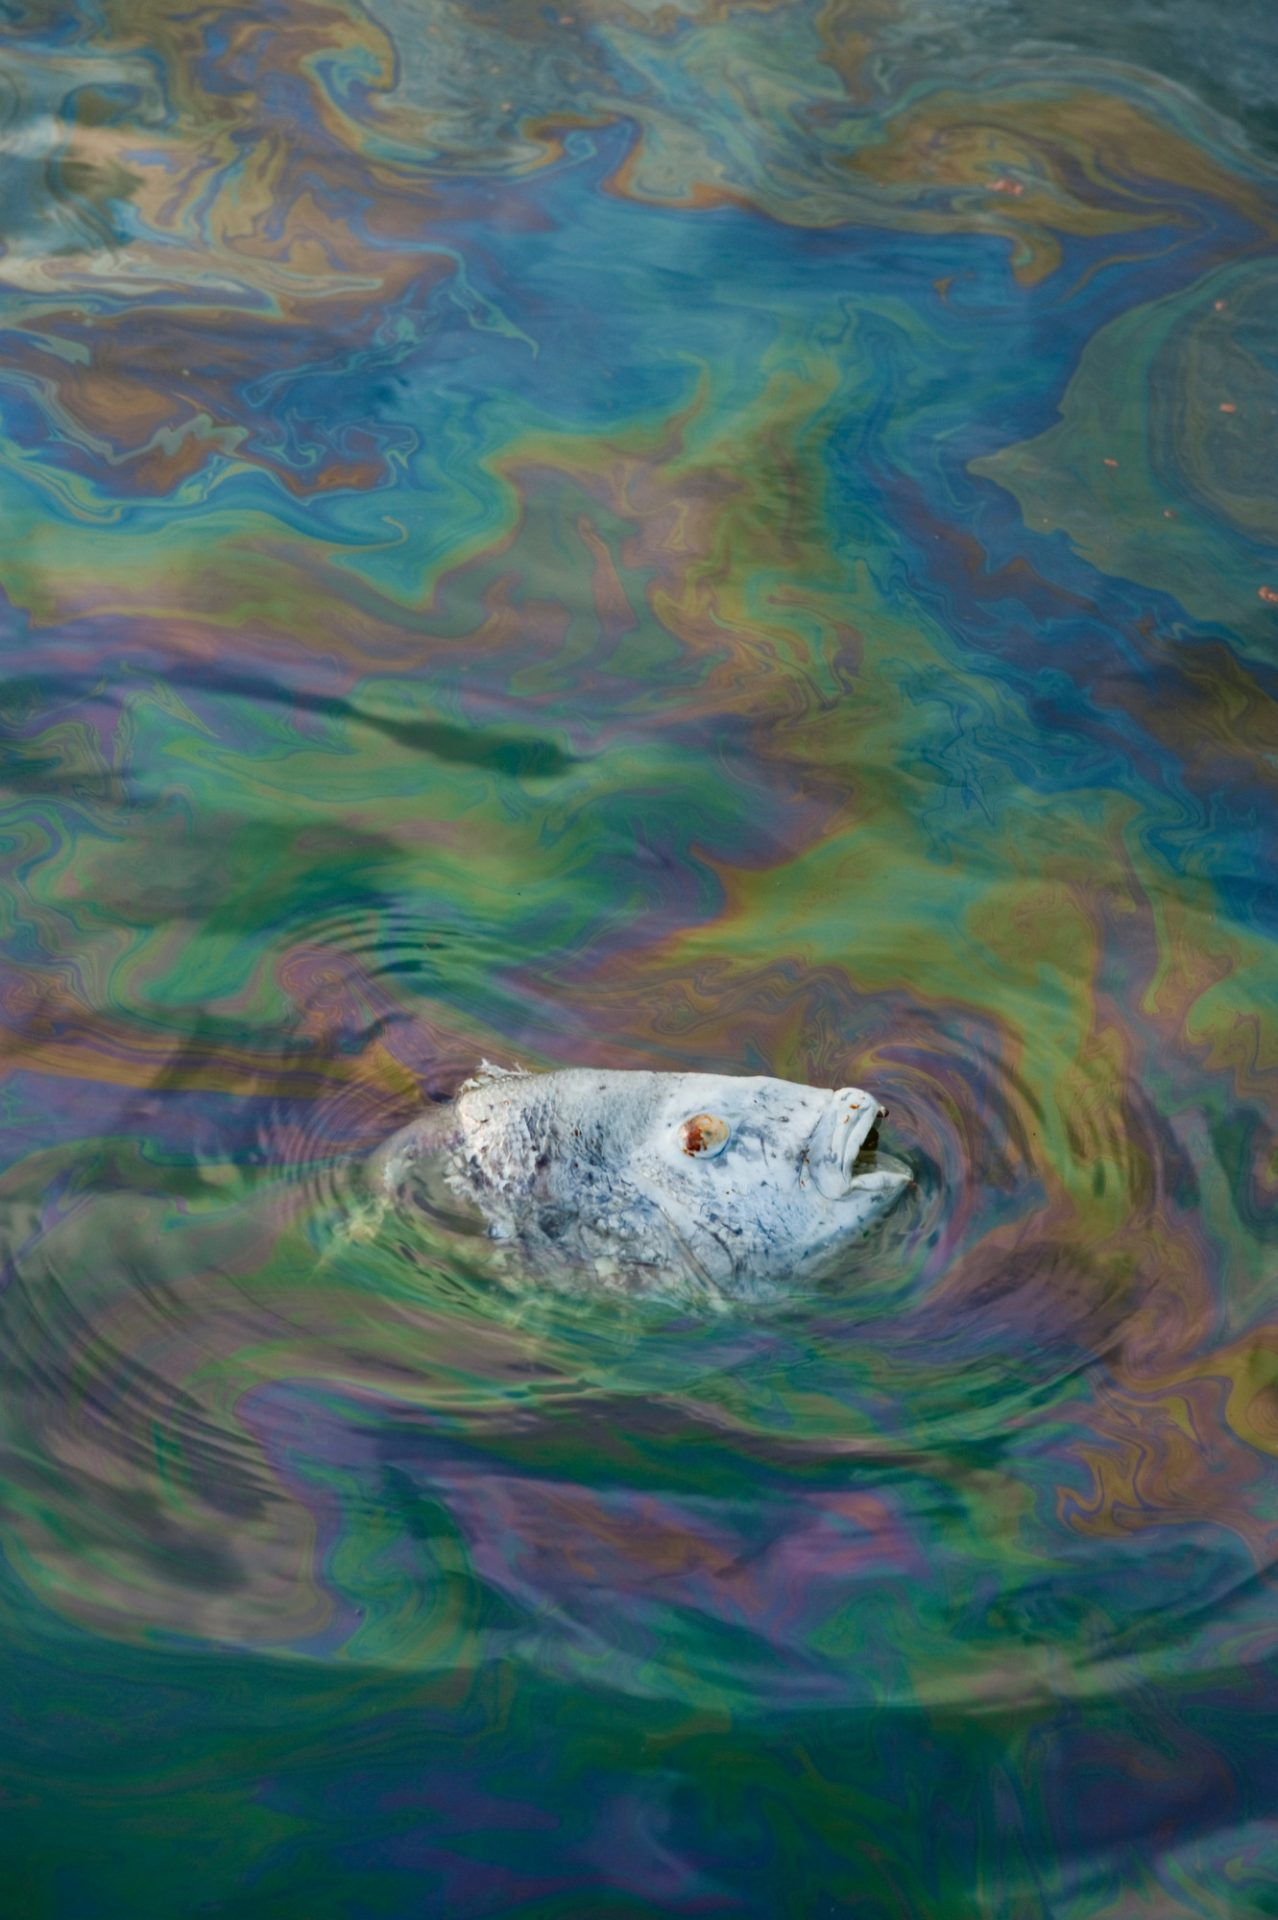 Photo: A dead black drum (Pogonias cromis) as it floats through oil from the Deepwater Horizon spill, near Grand Isle, Louisiana.